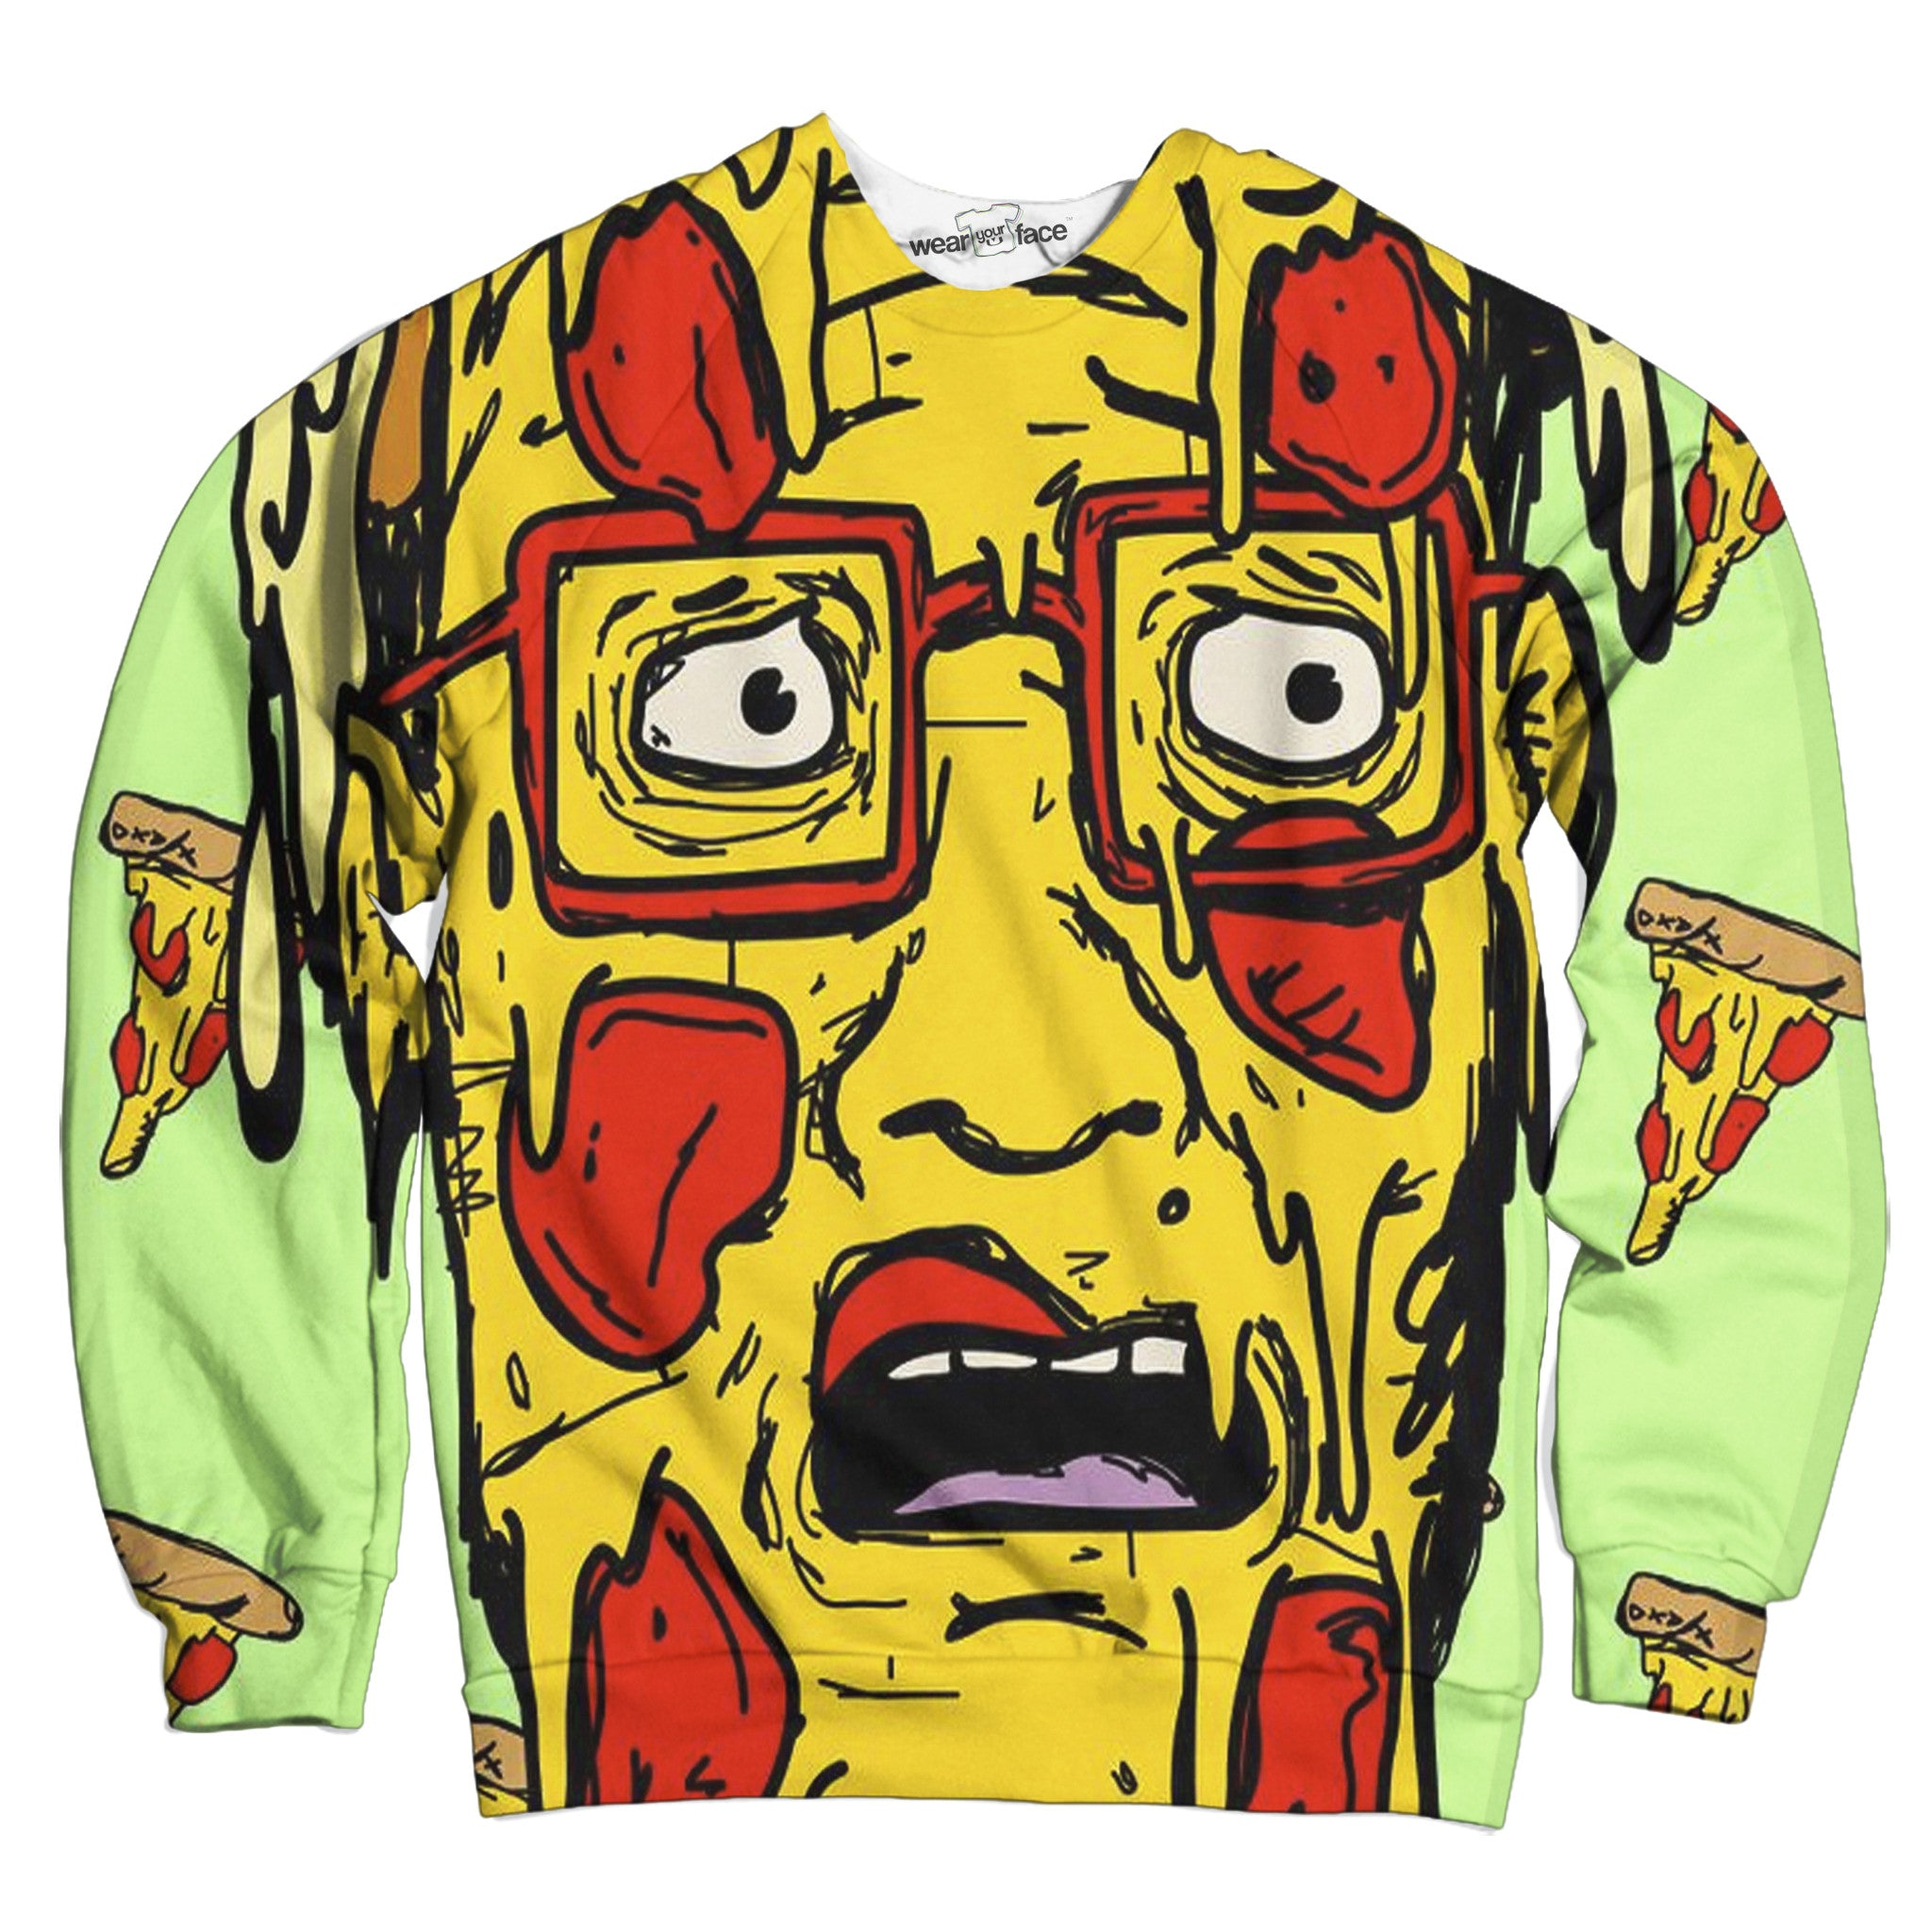 Stuffed Crust Hank Hill Sweatshirt